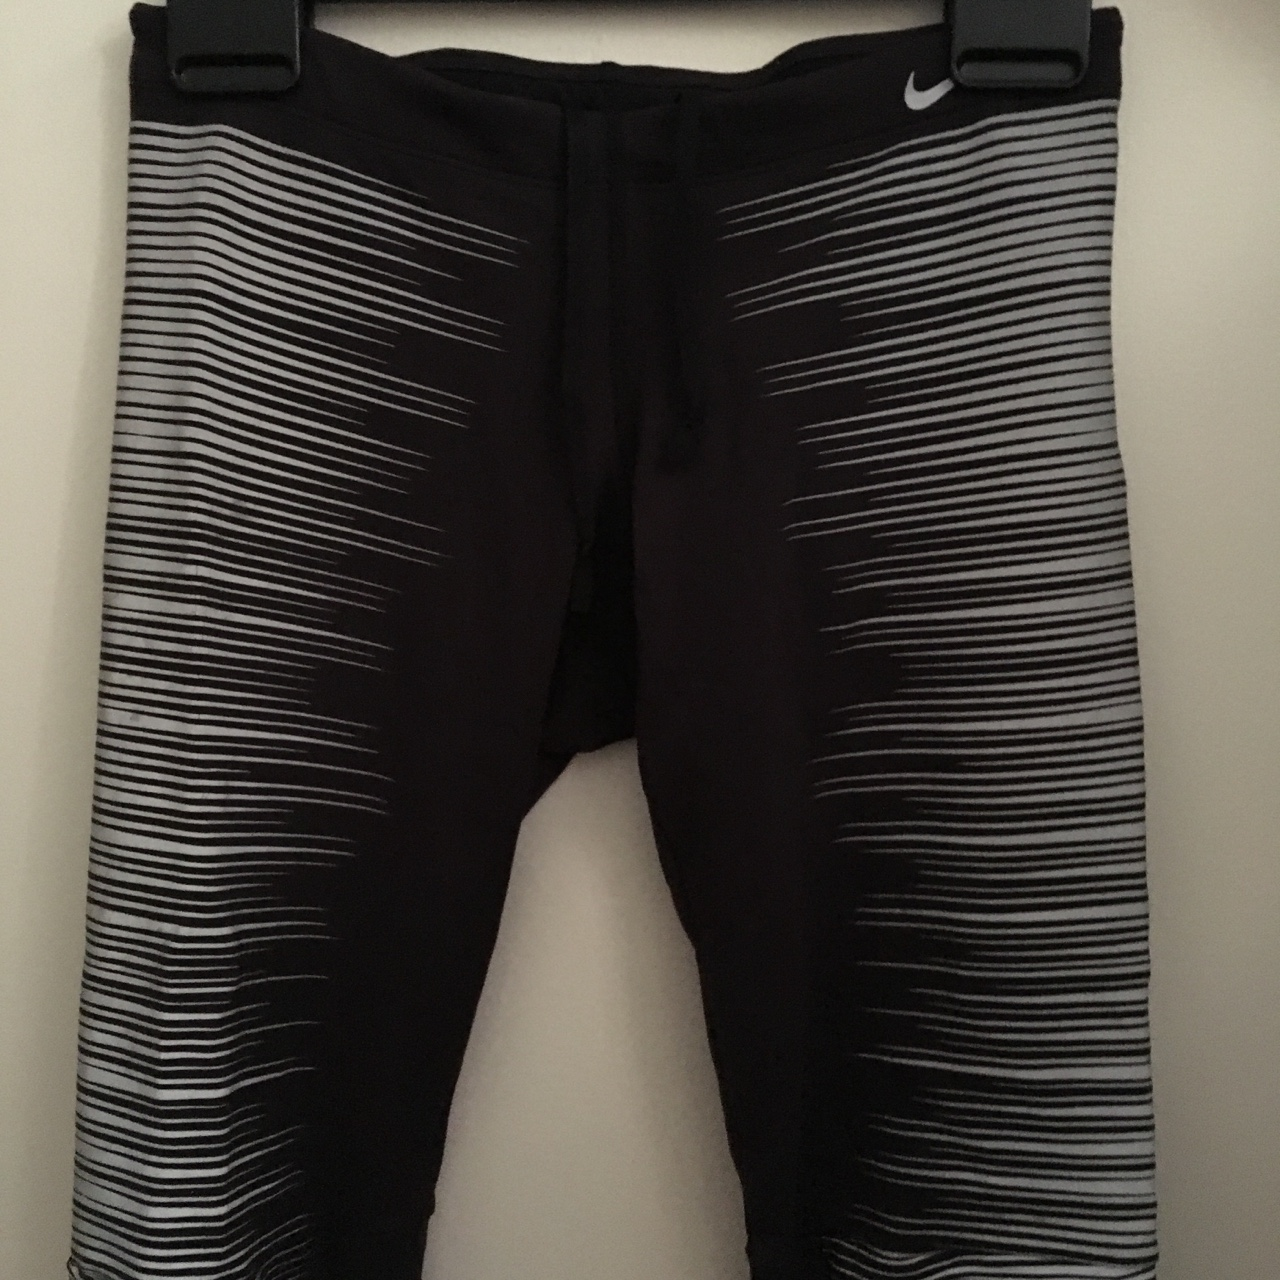 available popular stores 100% genuine Nike glow in the dark leggings, size S. bought for... - Depop